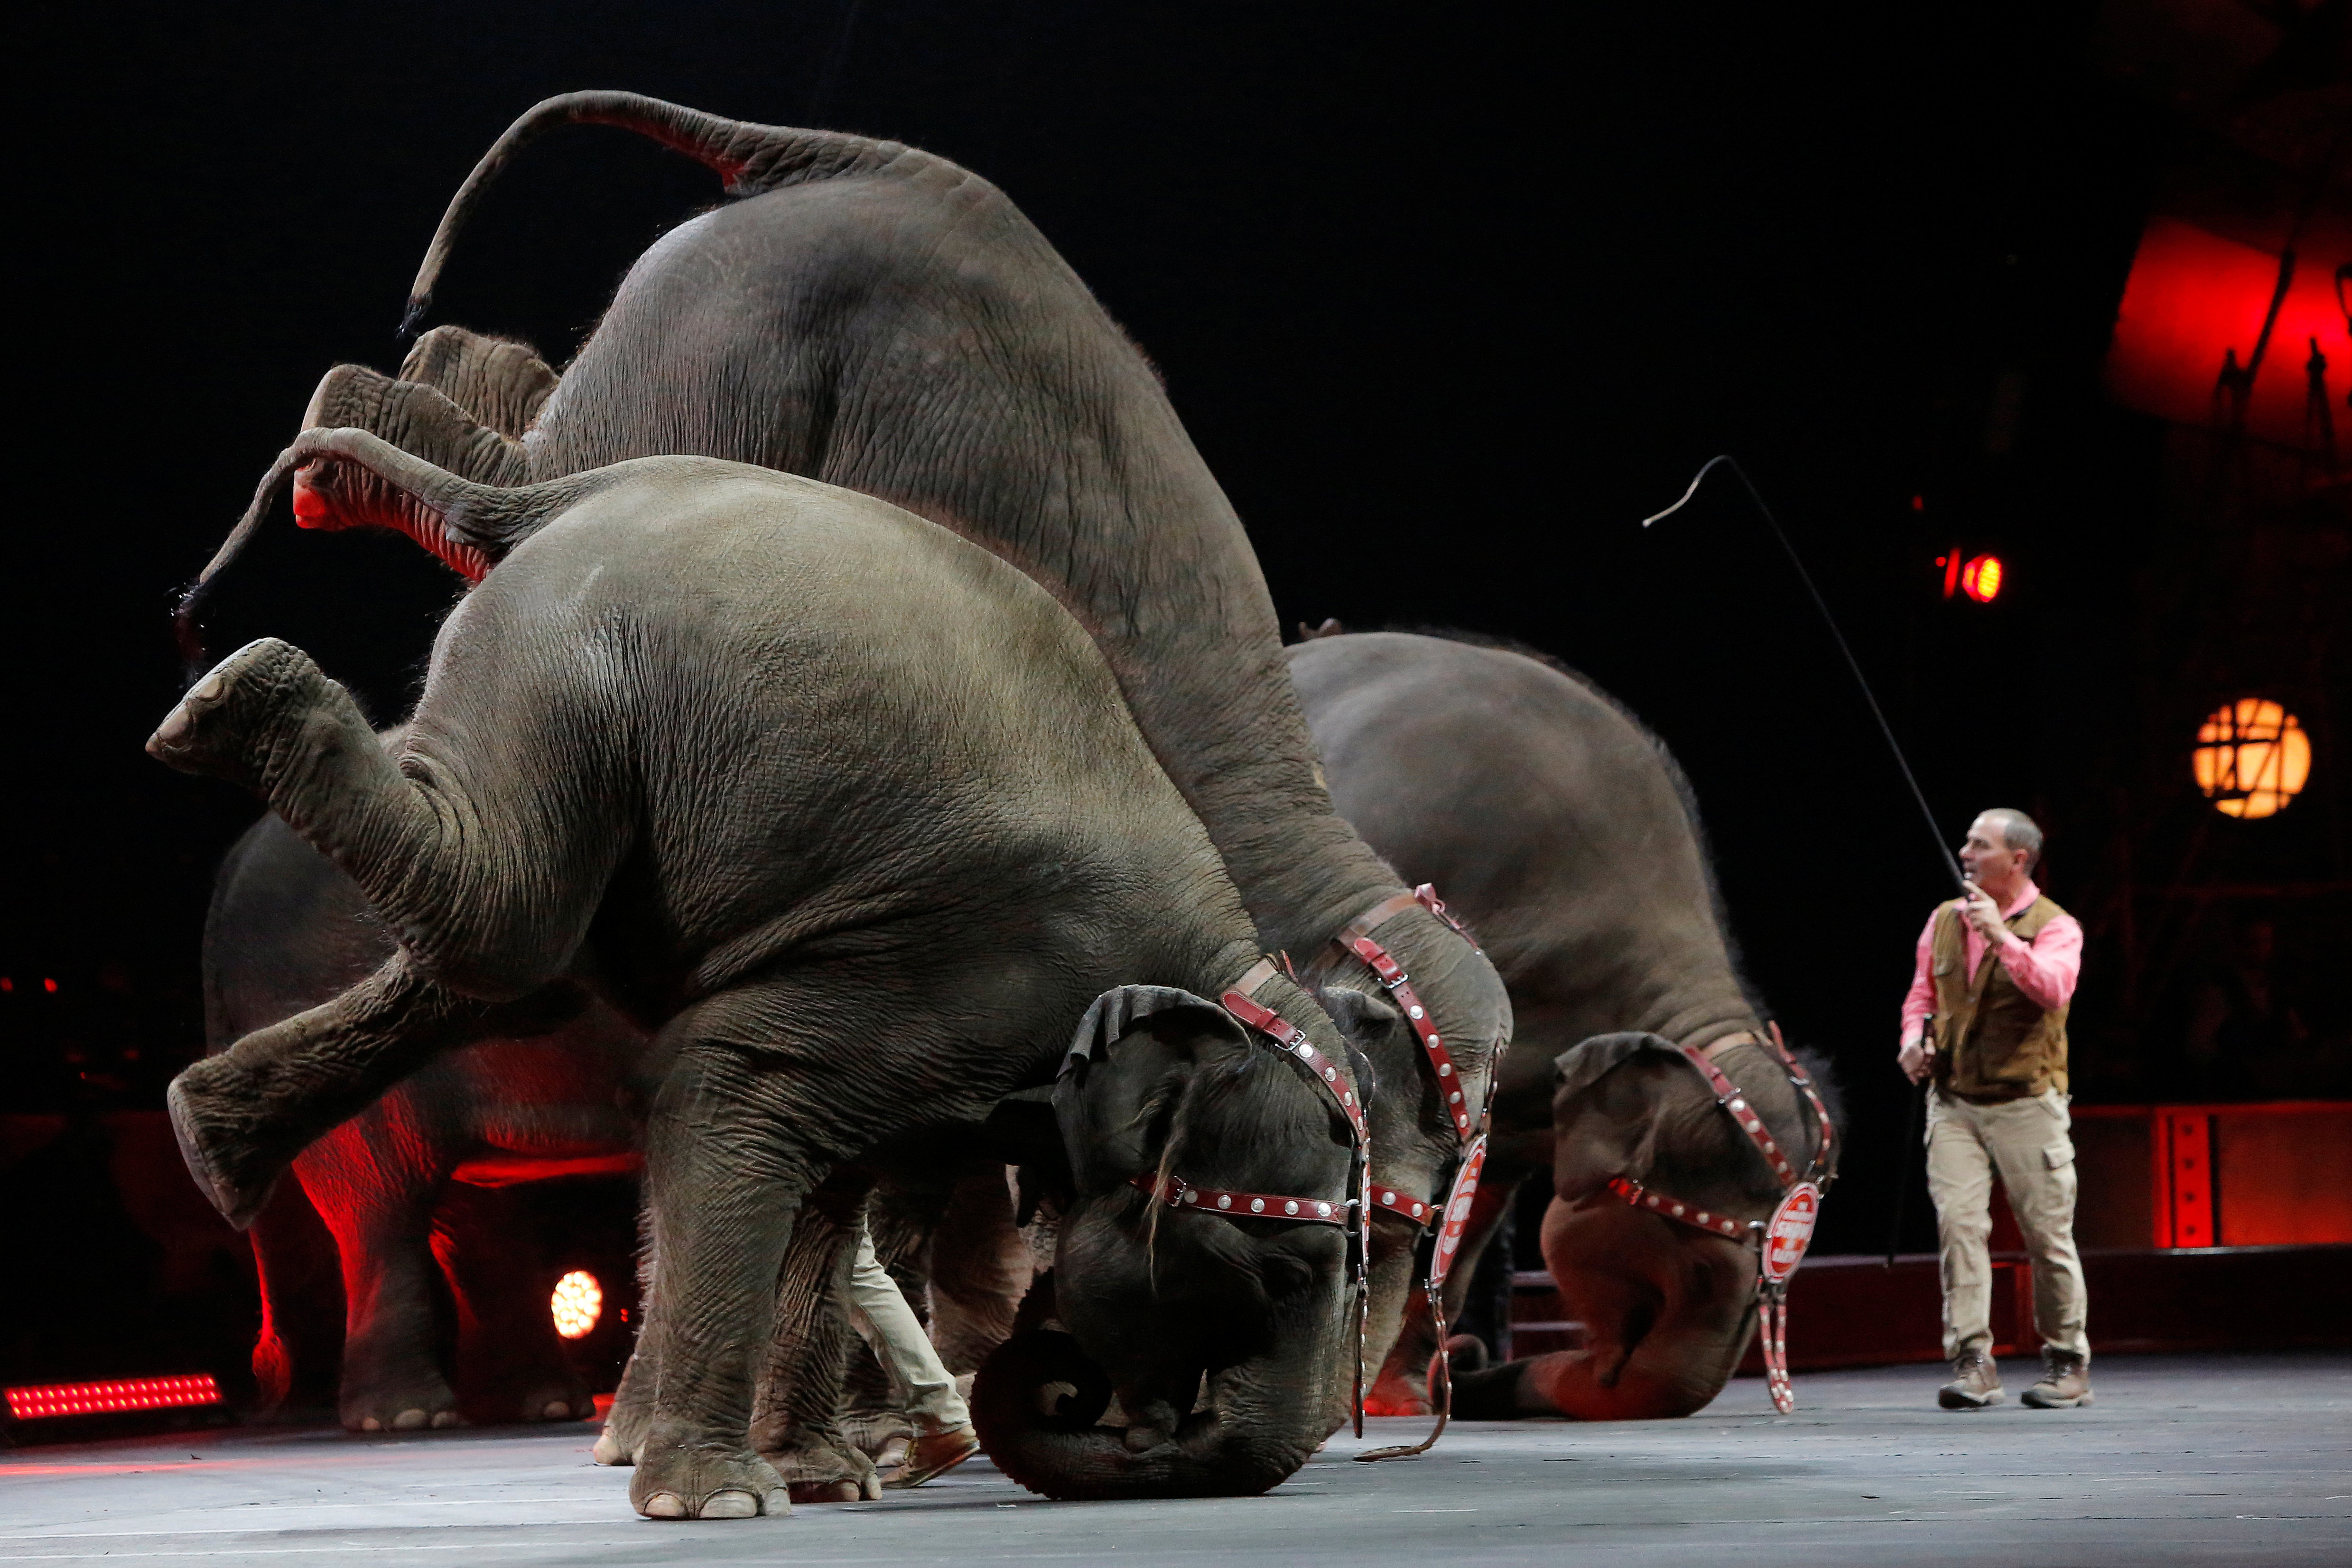 Elephants perform during Ringling Bros